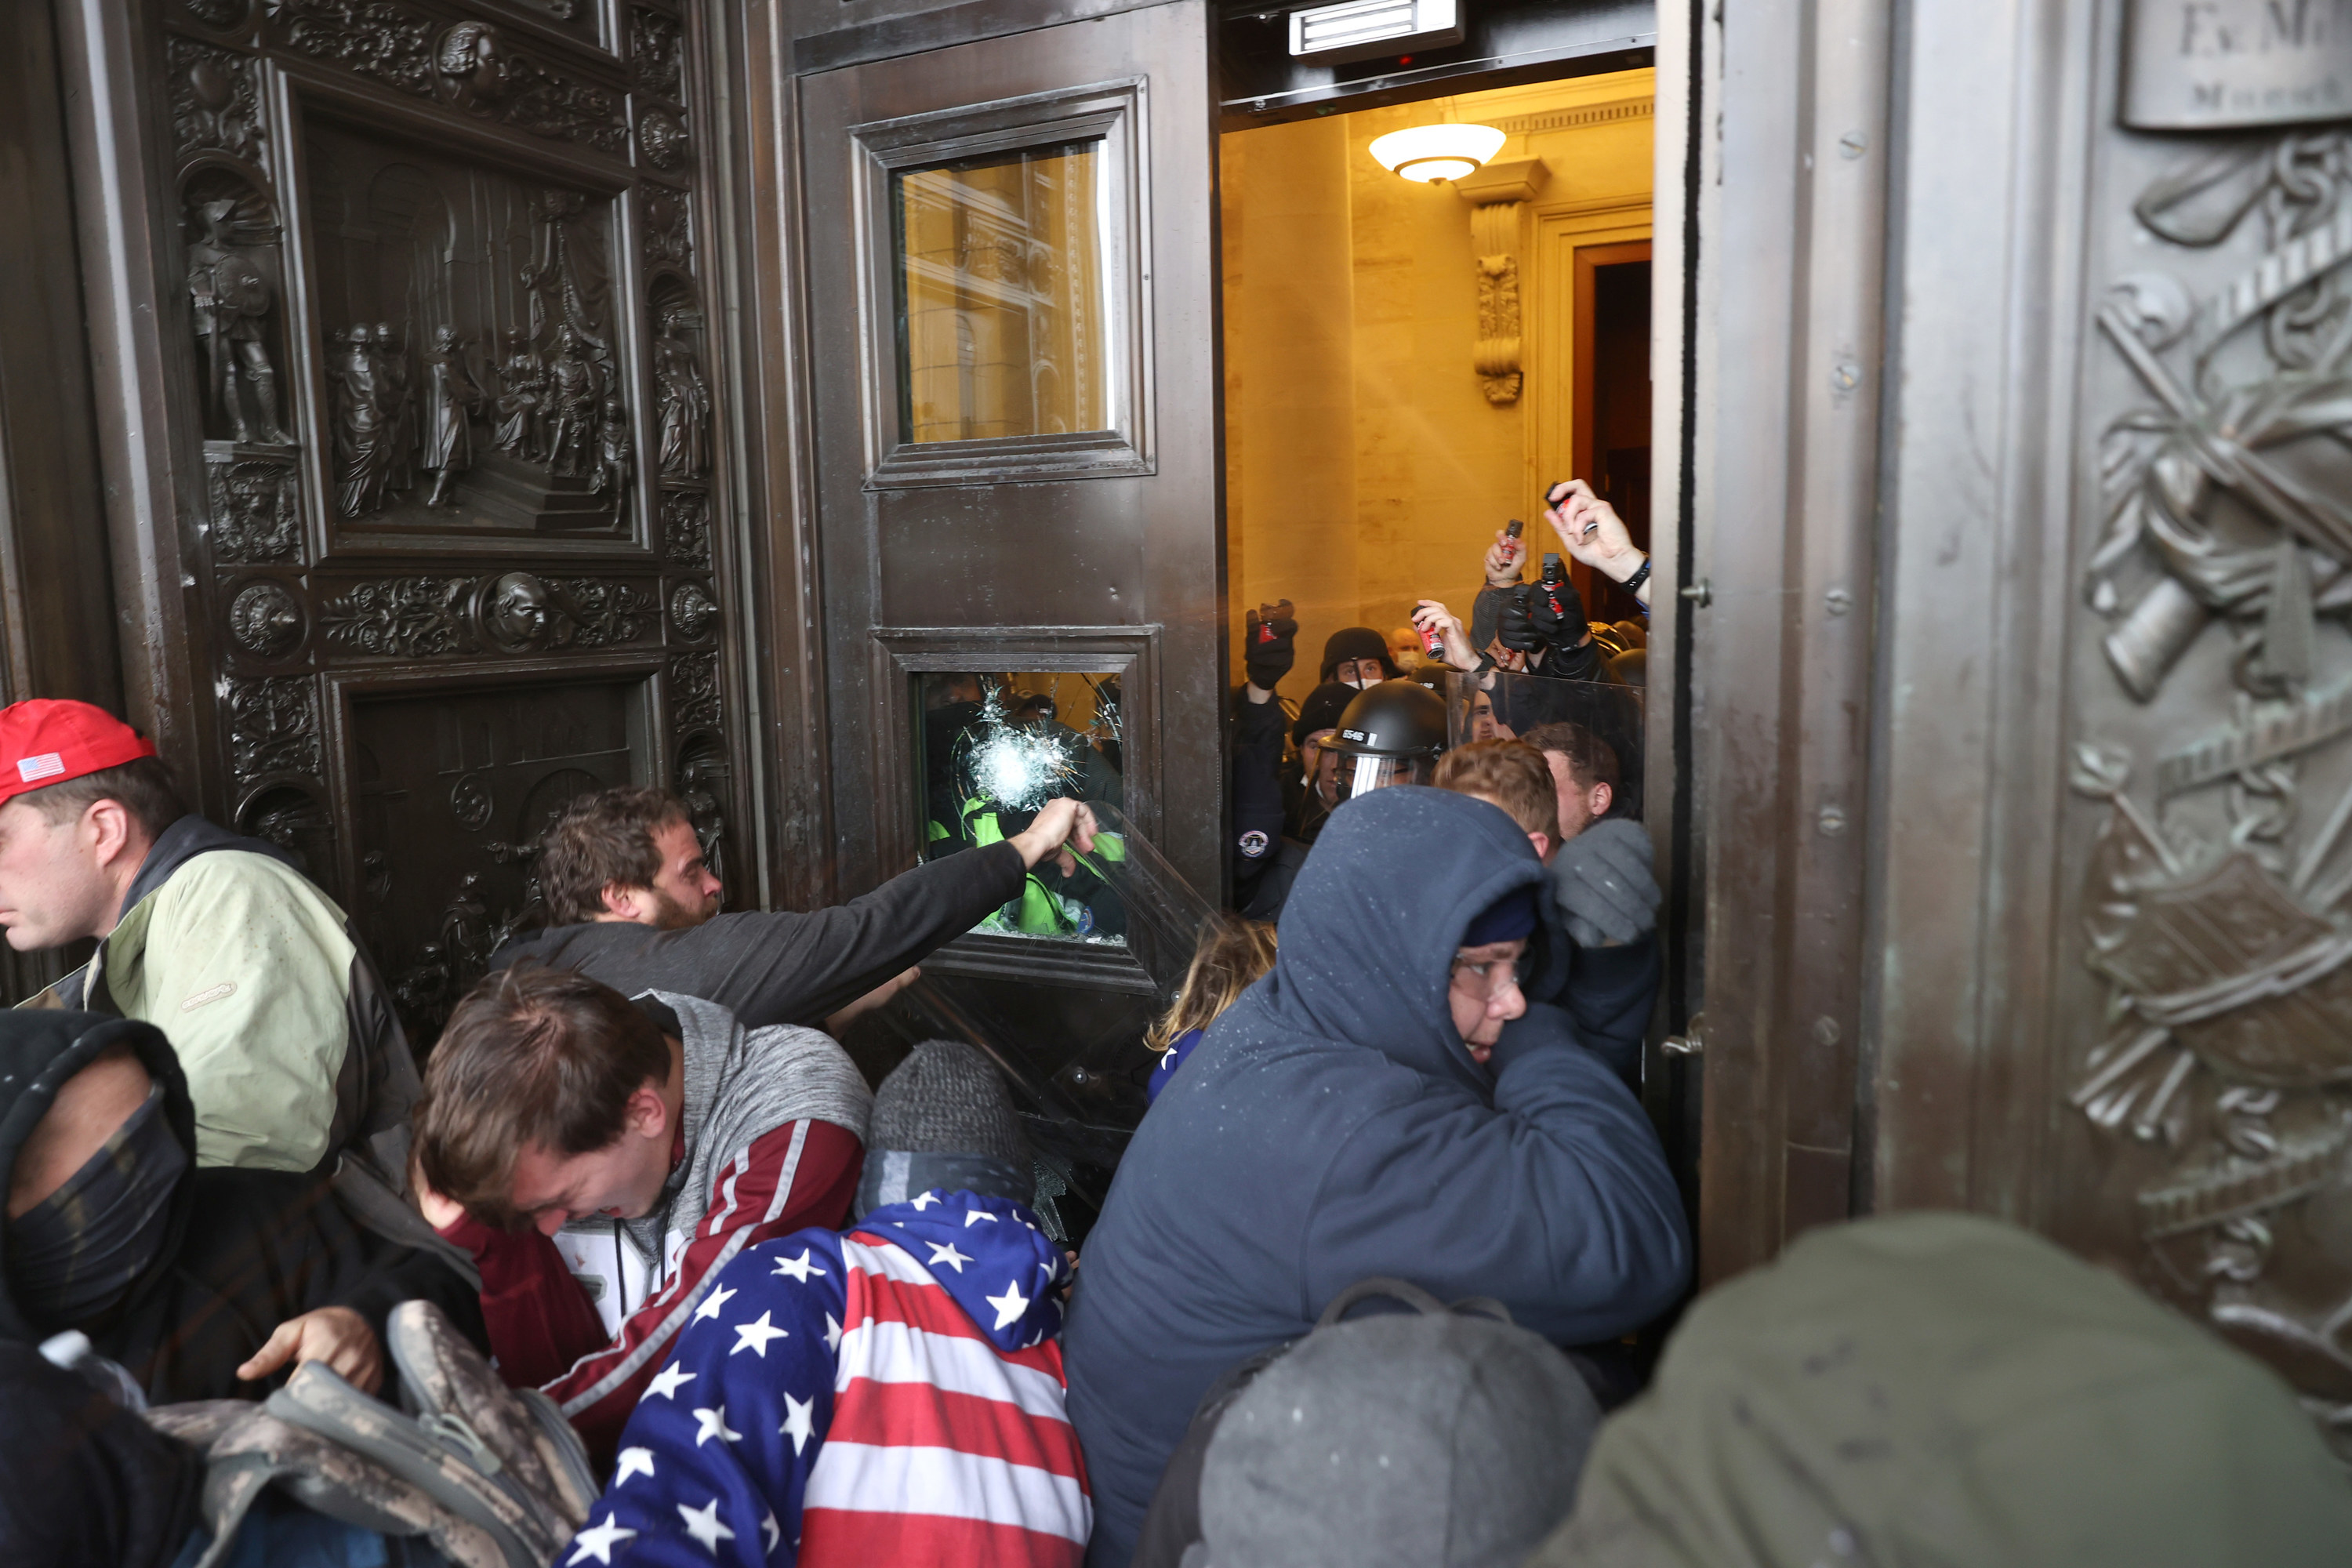 Protesters attempt to enter the U.S. Capitol Building